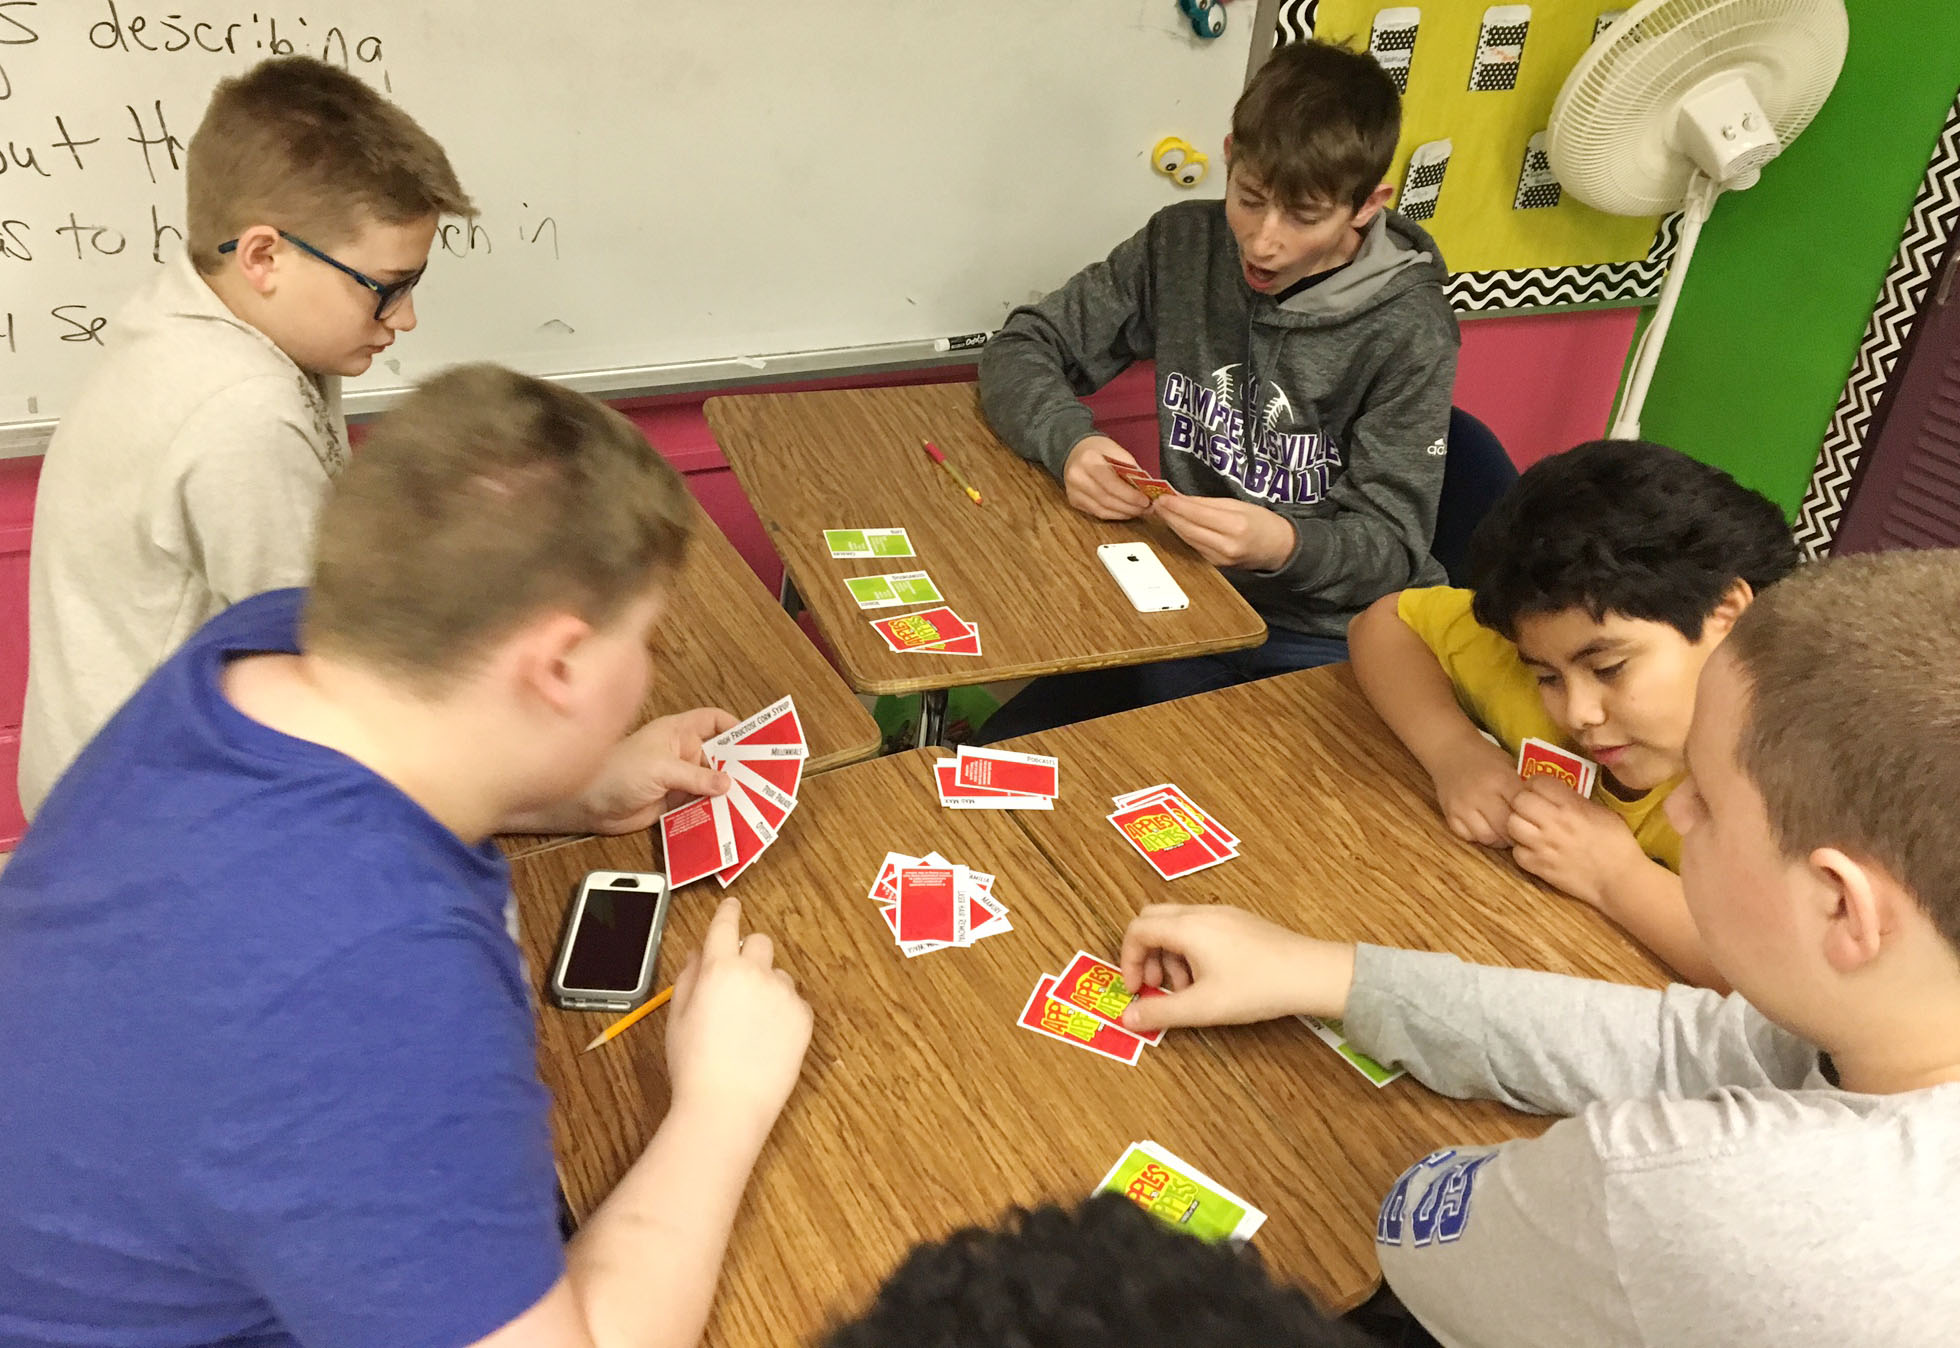 CMS students play Apples to Apples. Clockwise from left are seventh-grader Blake Settle, sixth-grader Brady Hoosier, seventh-grader Waylon Franklin and fifth-grader Alex Martinez play the game with their classmates.